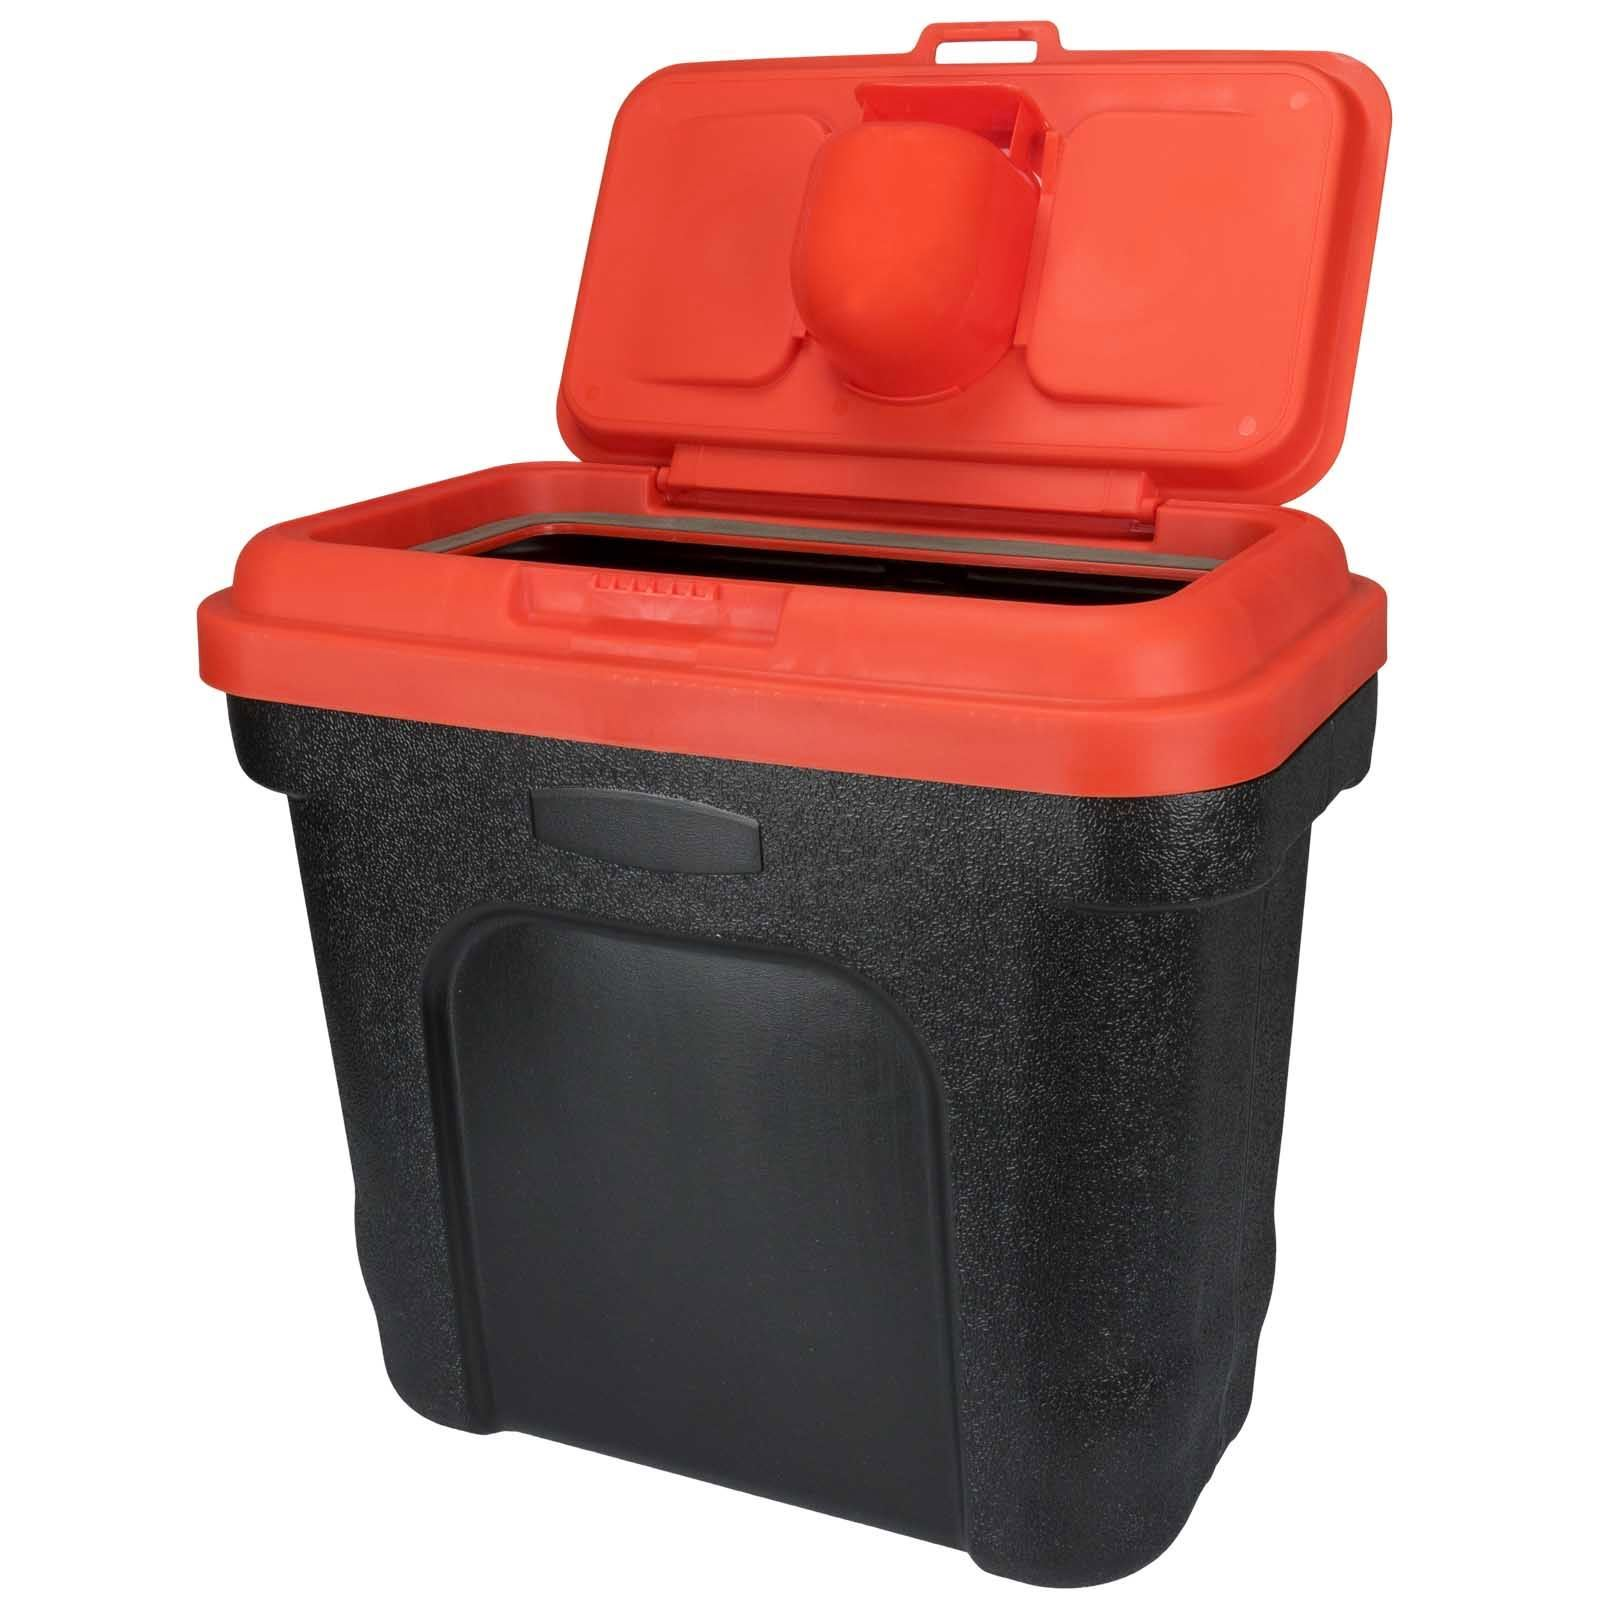 Pet-Food-Storage-Container-Dry-Dog-Cat-Food-Bird-Seed-Storage-Box-Bin-With-Scoop thumbnail 11